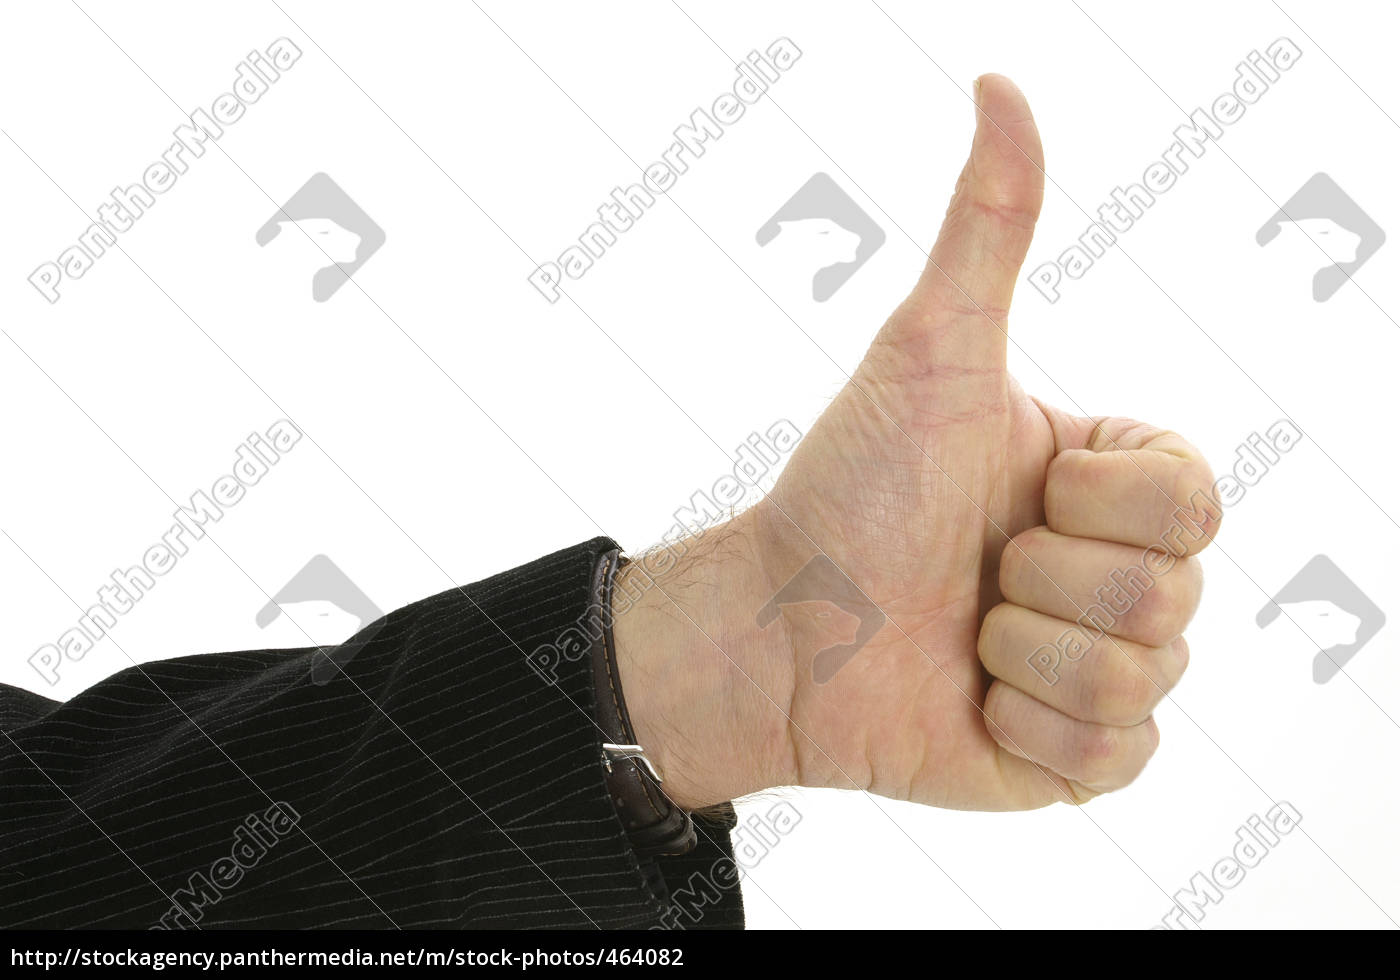 thumbs, up - 464082